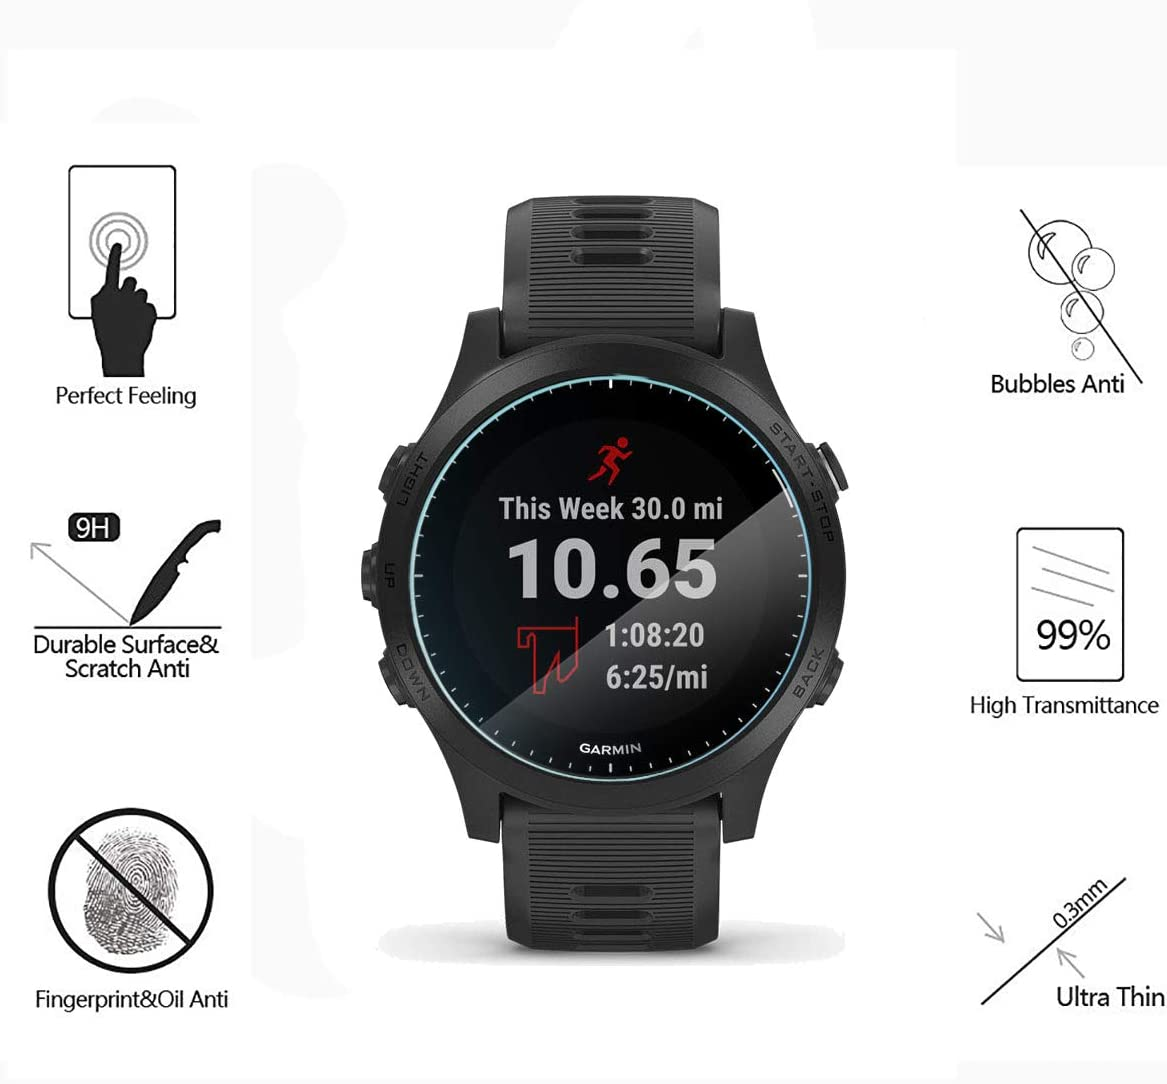 9H Anti-Scratch Glass Protector for Garmin FR 945 Music Smartwatch Screen Protection MWOOT Pack of 4 Tempered Glass Screen Protector Compatible with Garmin Forerunner 945